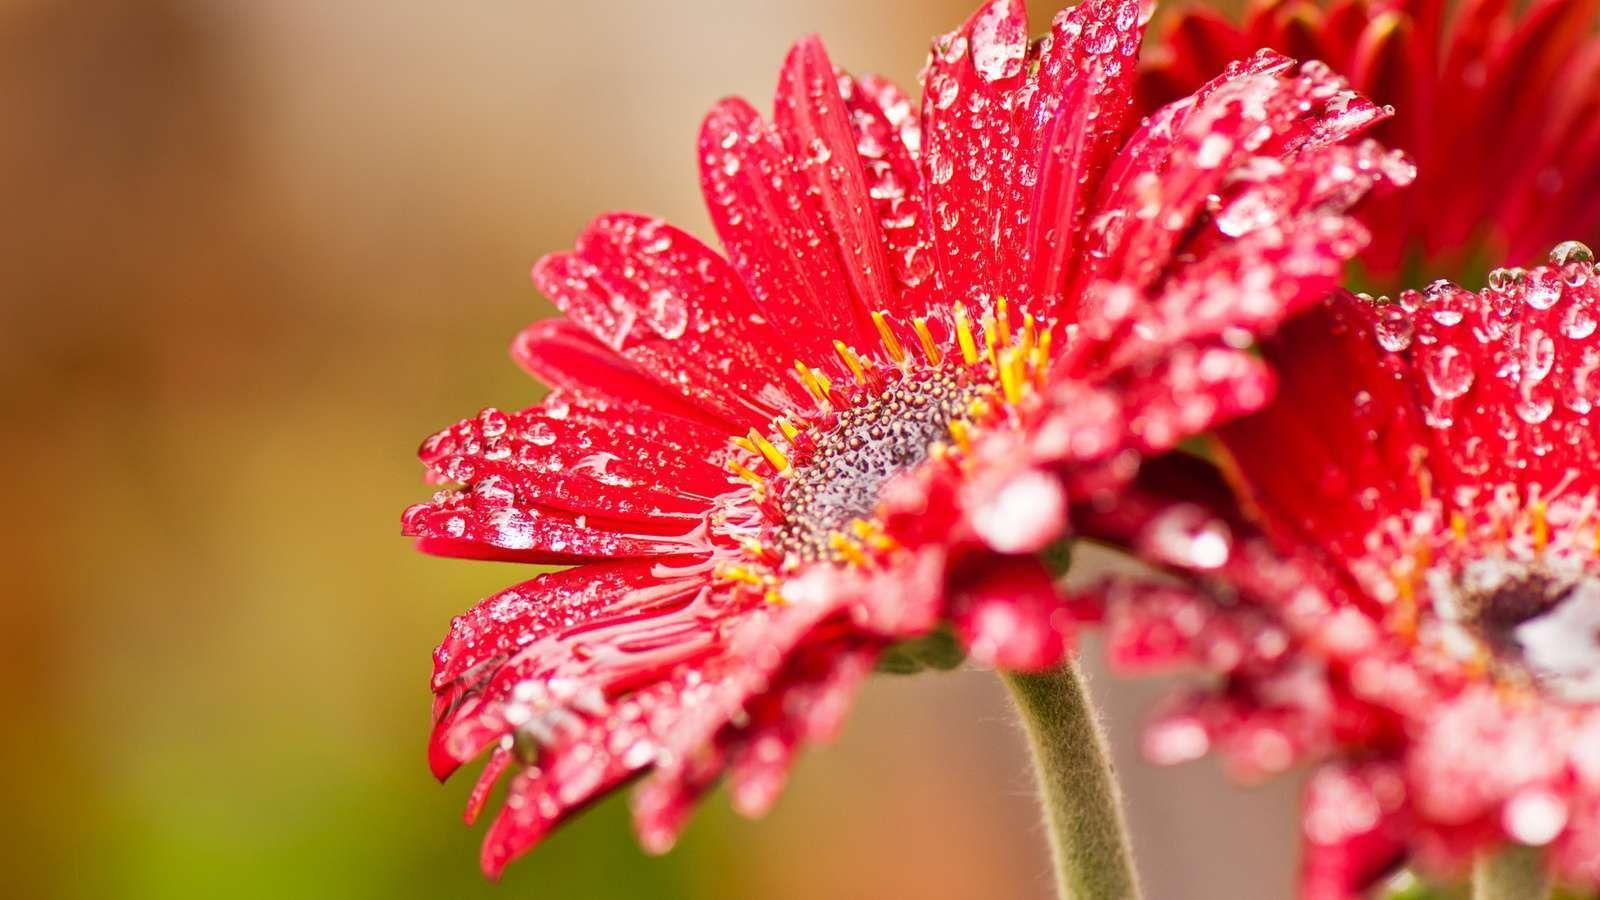 Water Flowers Photos HD | HD Wallpapers Pulse